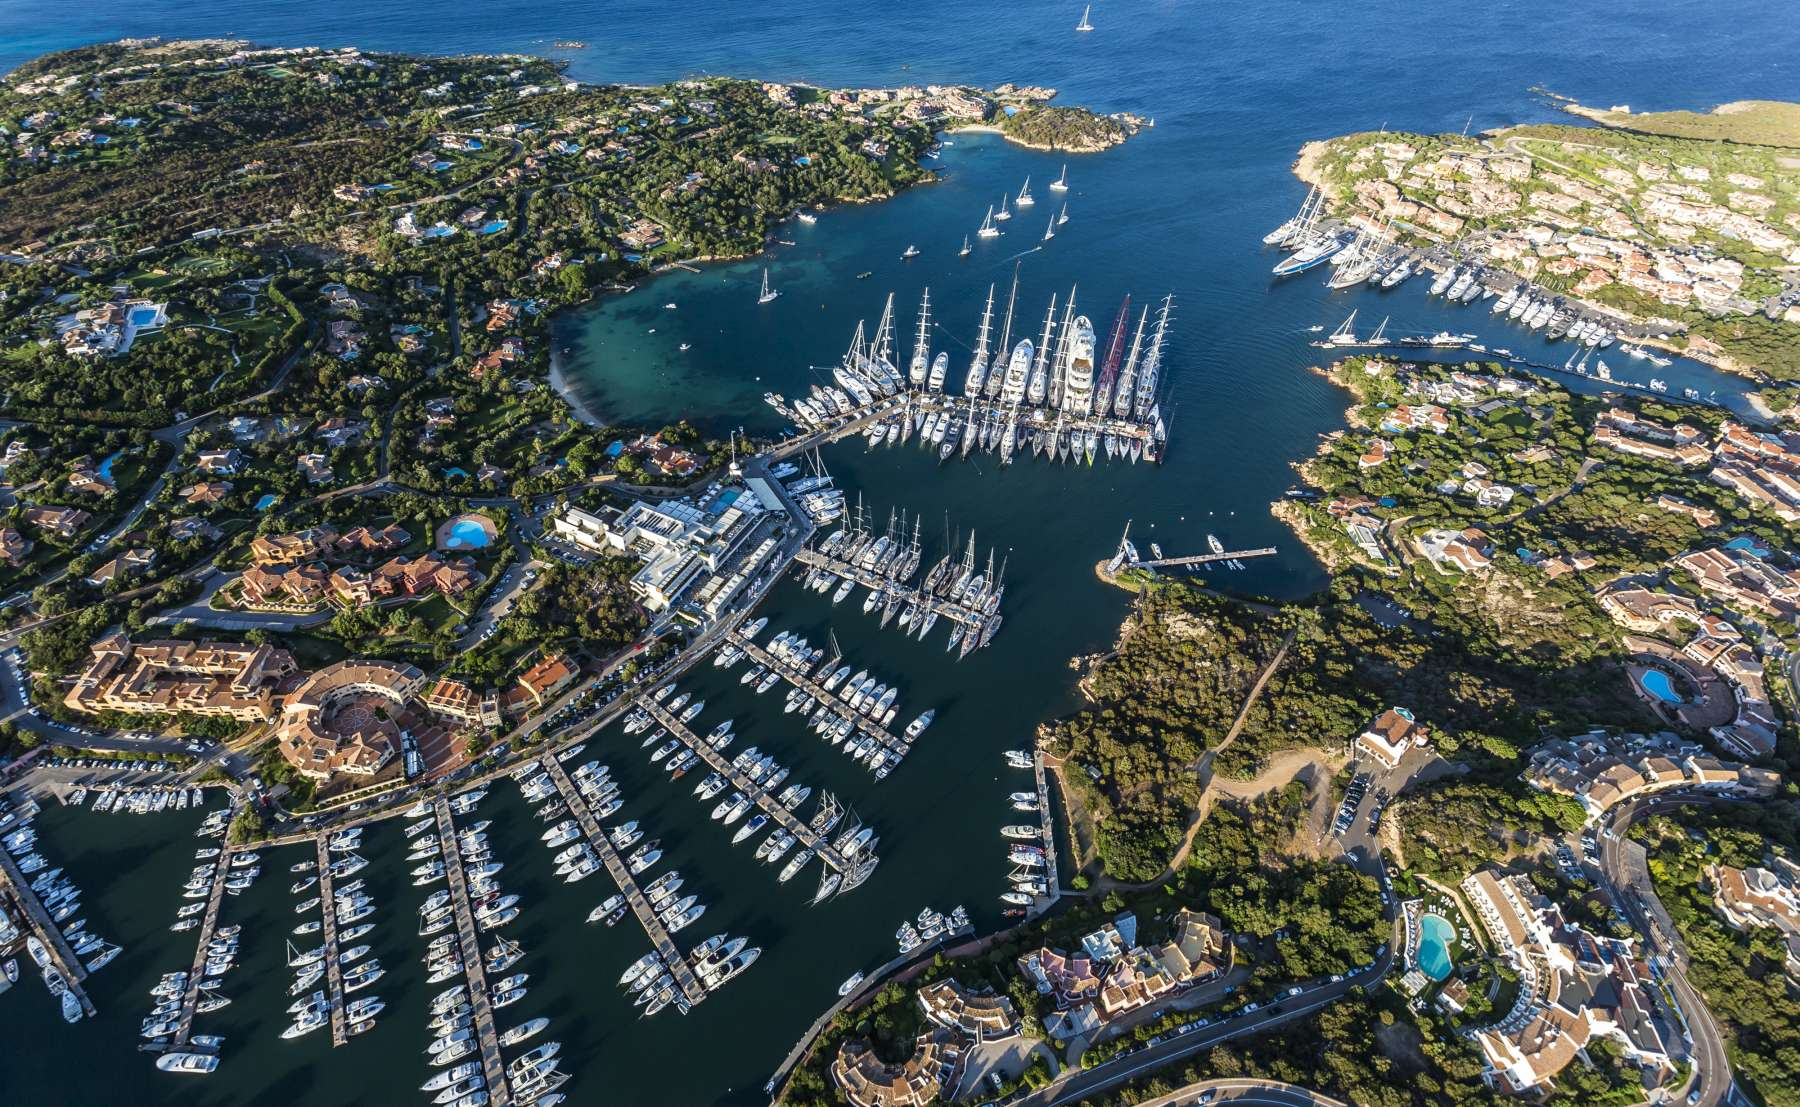 Yacht Club Costa Smeralda forced to cancel May and June regattas - NEWS - Yacht Club Costa Smeralda